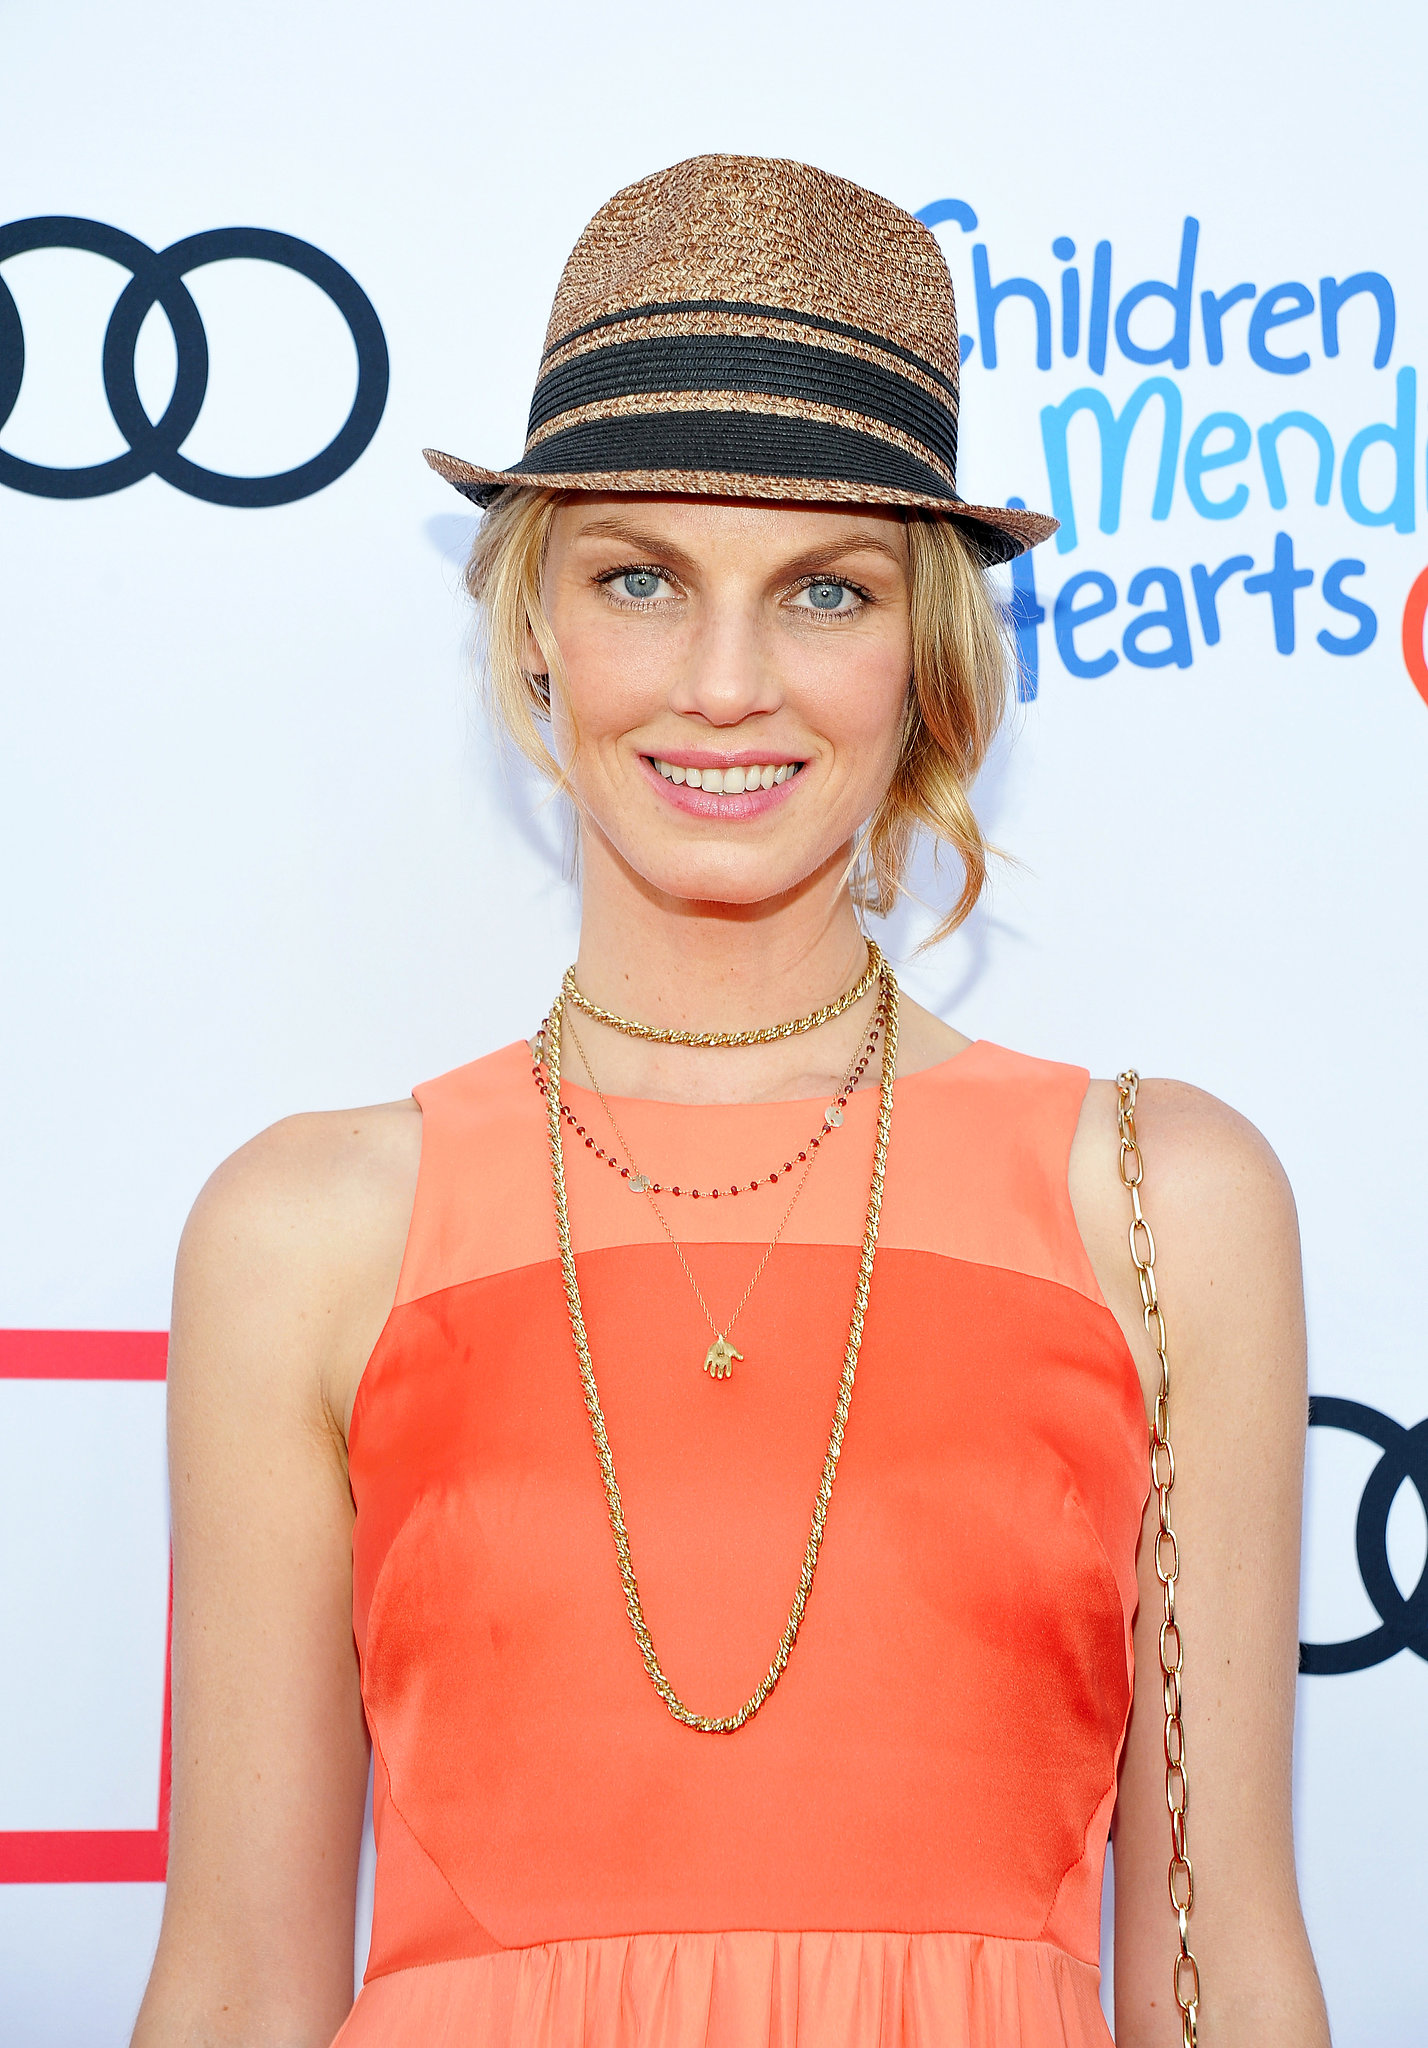 Model Angela Lindvall topped off a low bun with a Summer hat — an easy way to disguise a not-so-stellar hair day.